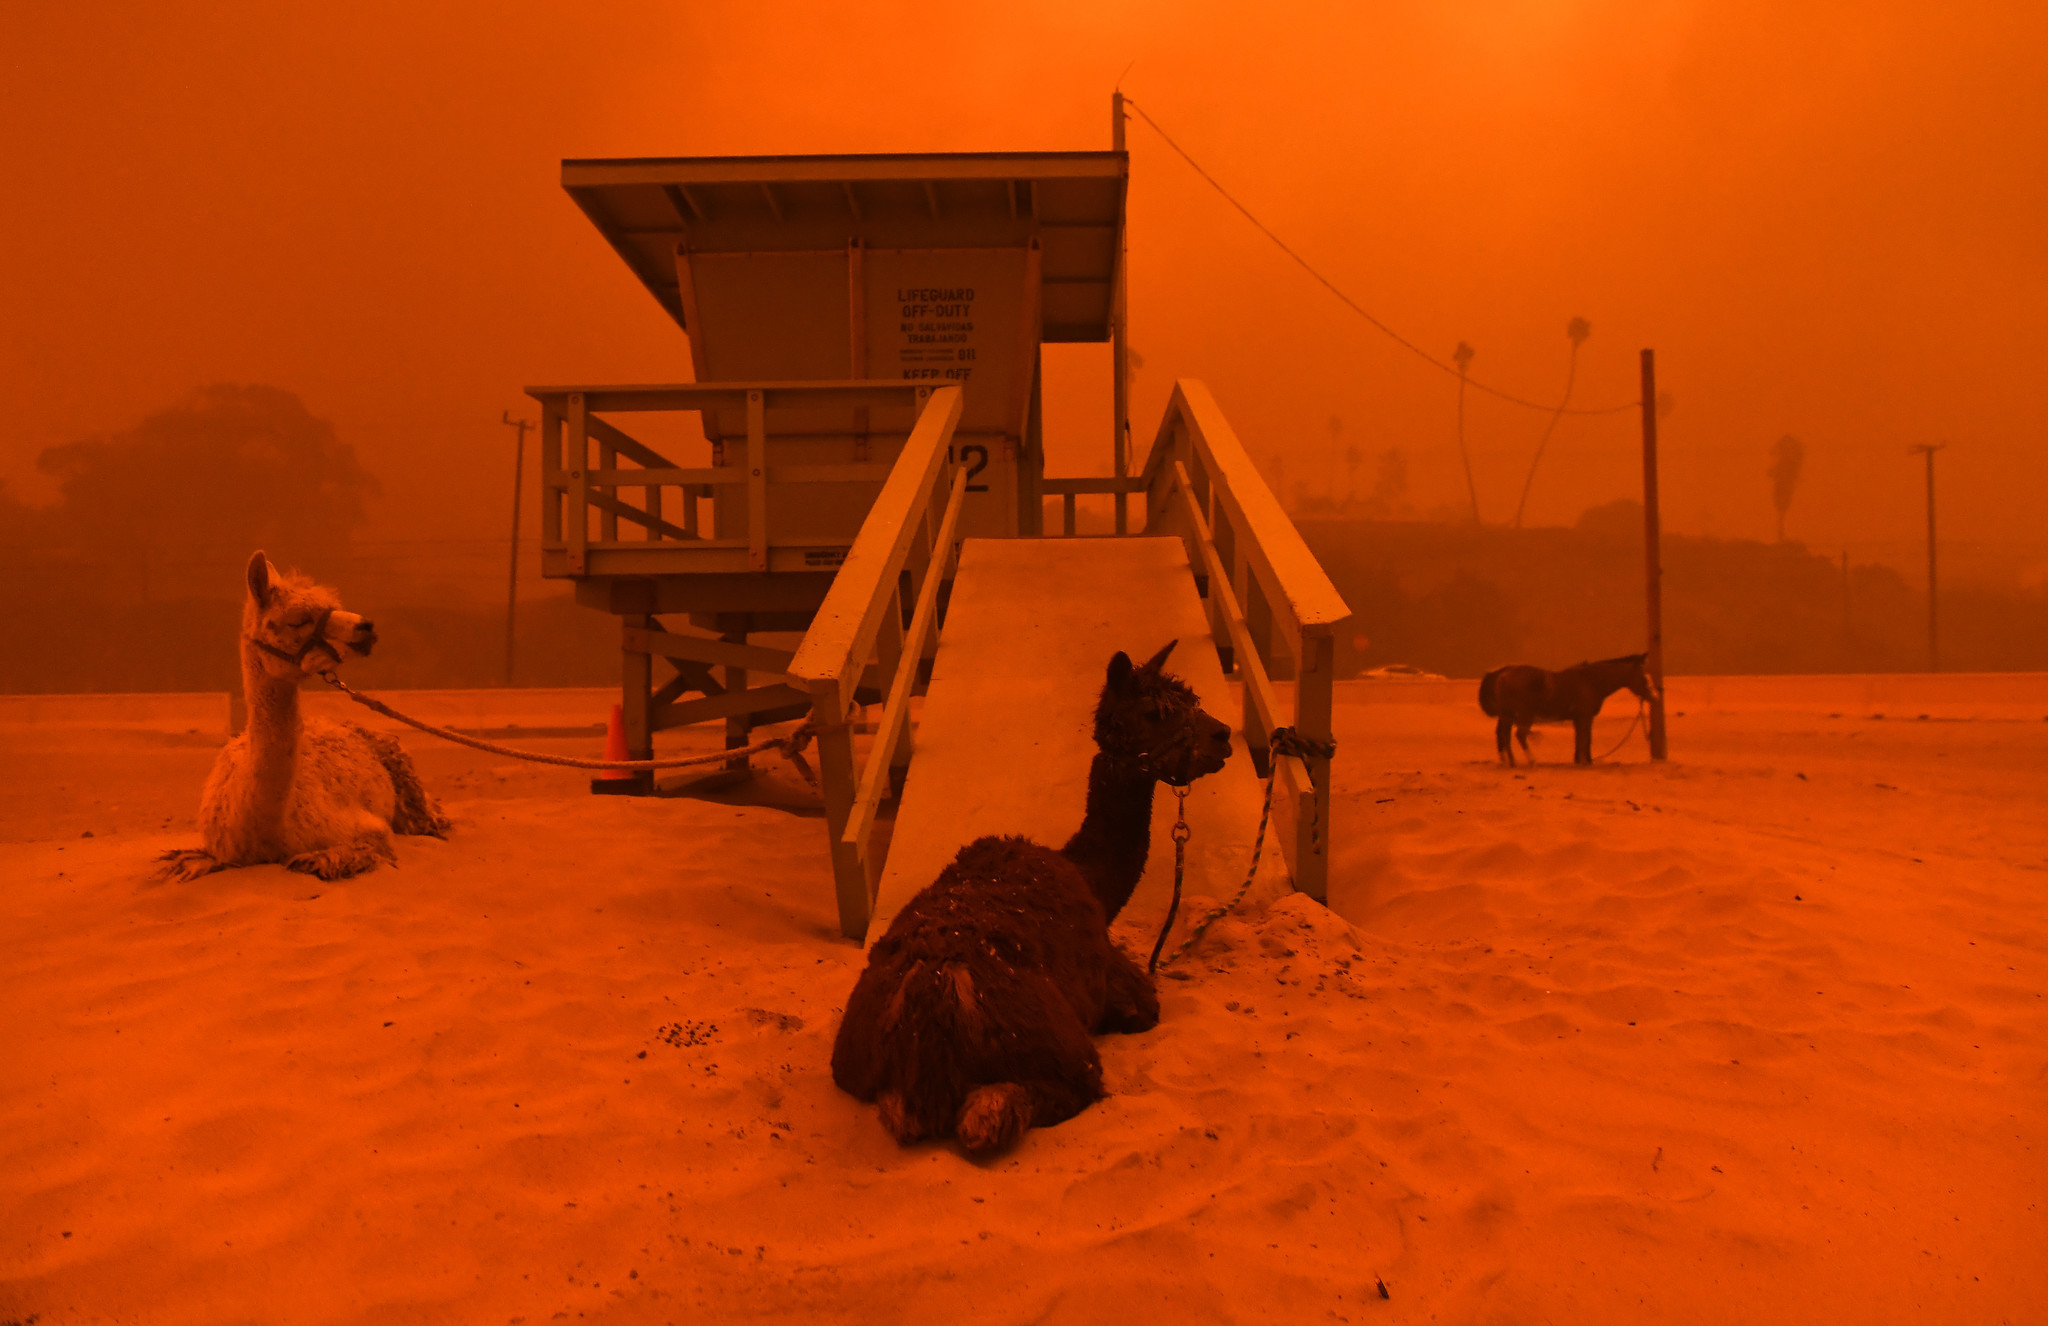 MALIBU, CALIFORNIA NOVEMBER 9, 2018-Llamas are tied to a lifeguard stand on the beach in Malibu as t